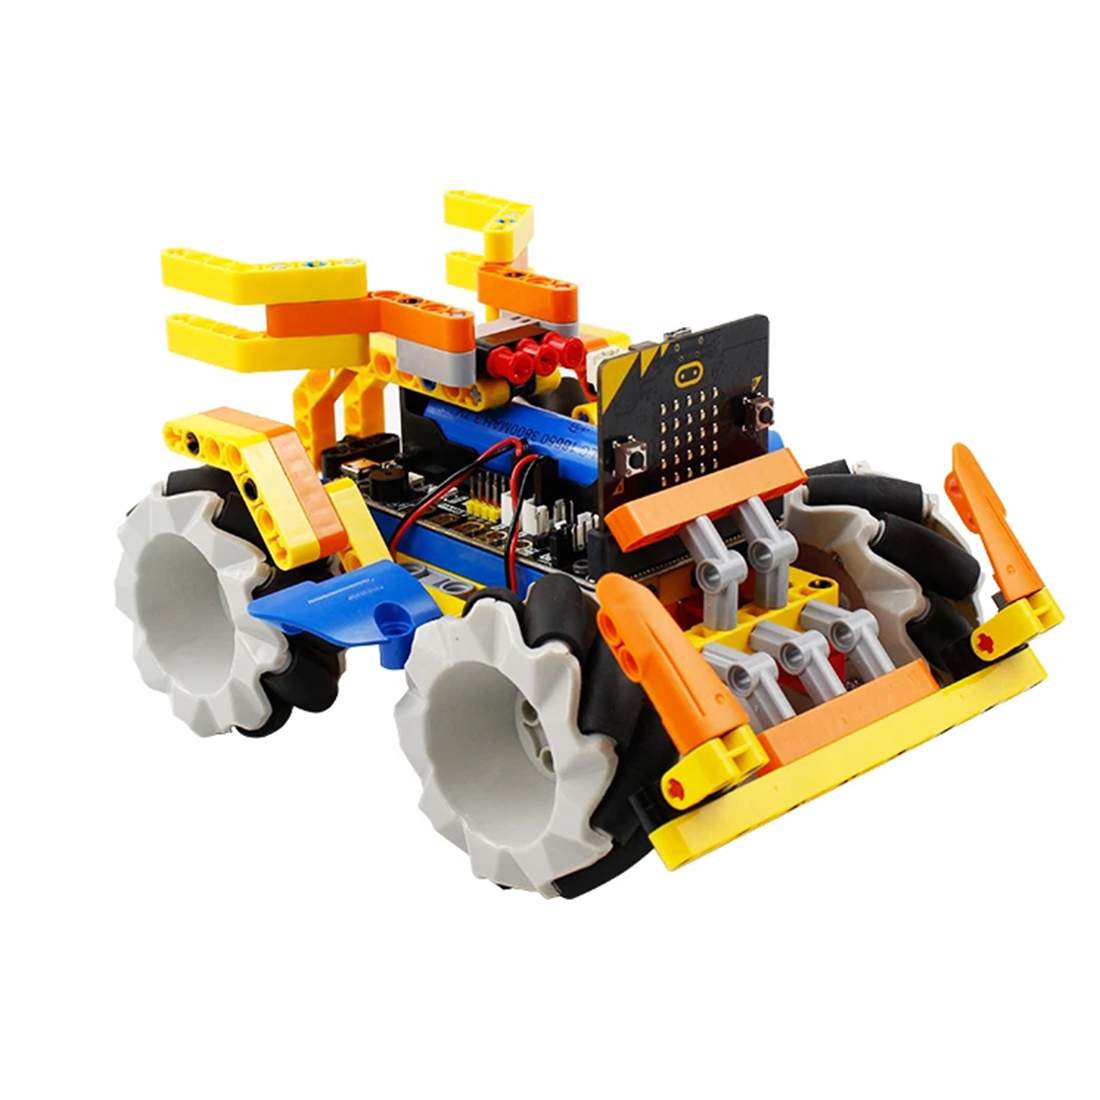 Programmable Intelligent Robot Building Block Kit Mecanum Wheel Smart Robot Car For Micro: Bit (With/Without Micro:bit Board)